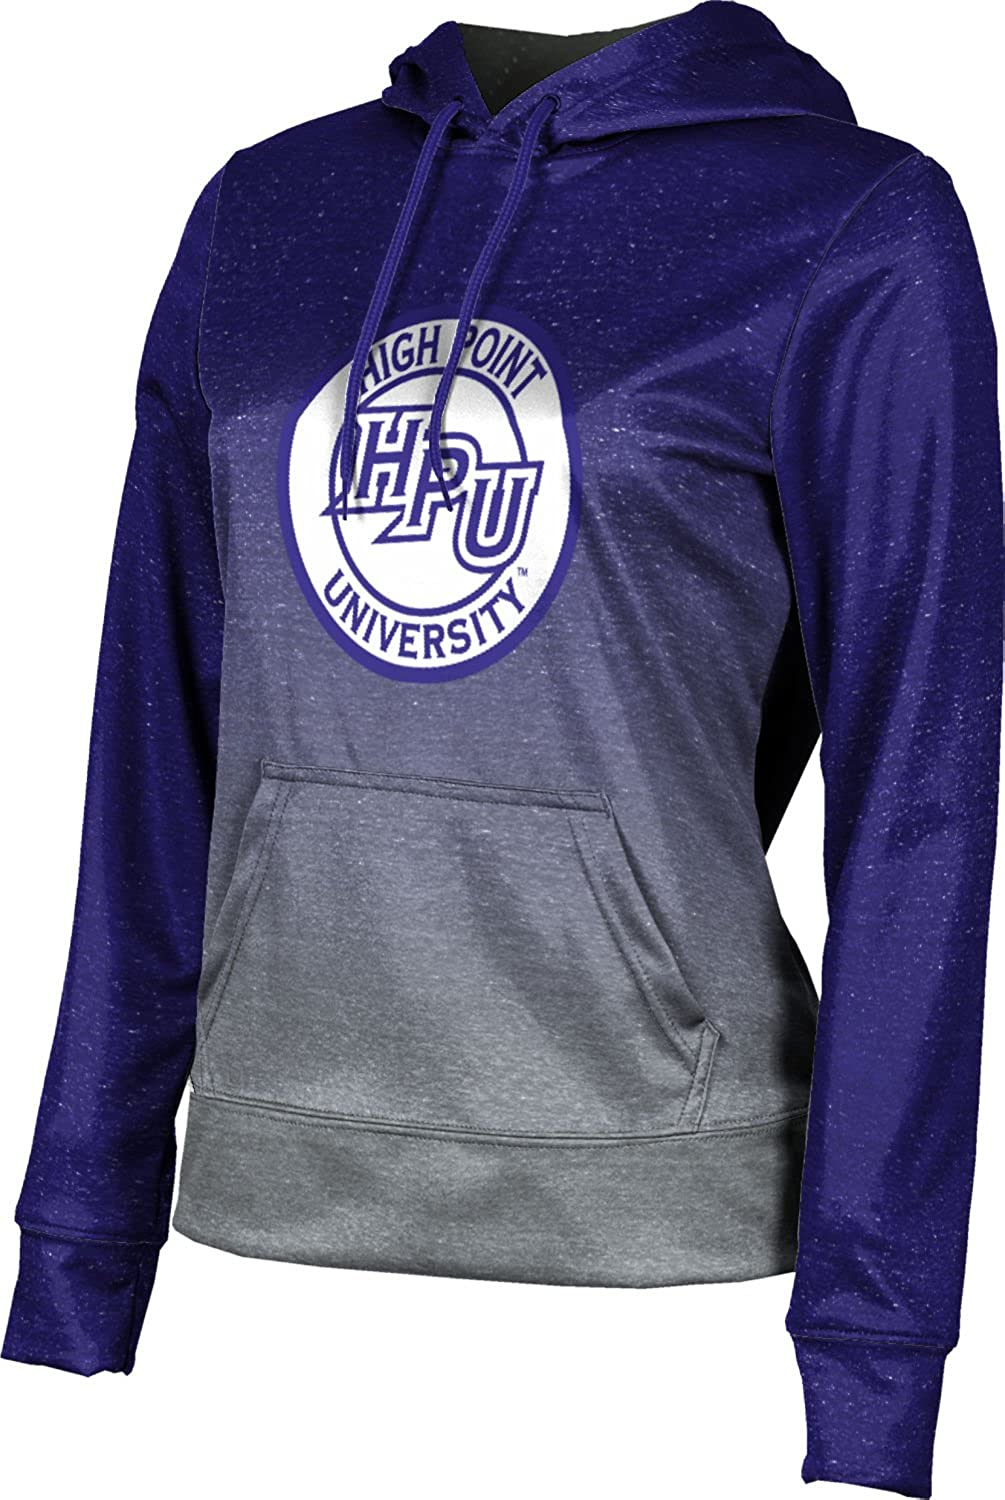 ProSphere High Point University Girls' Pullover Hoodie - Ombre